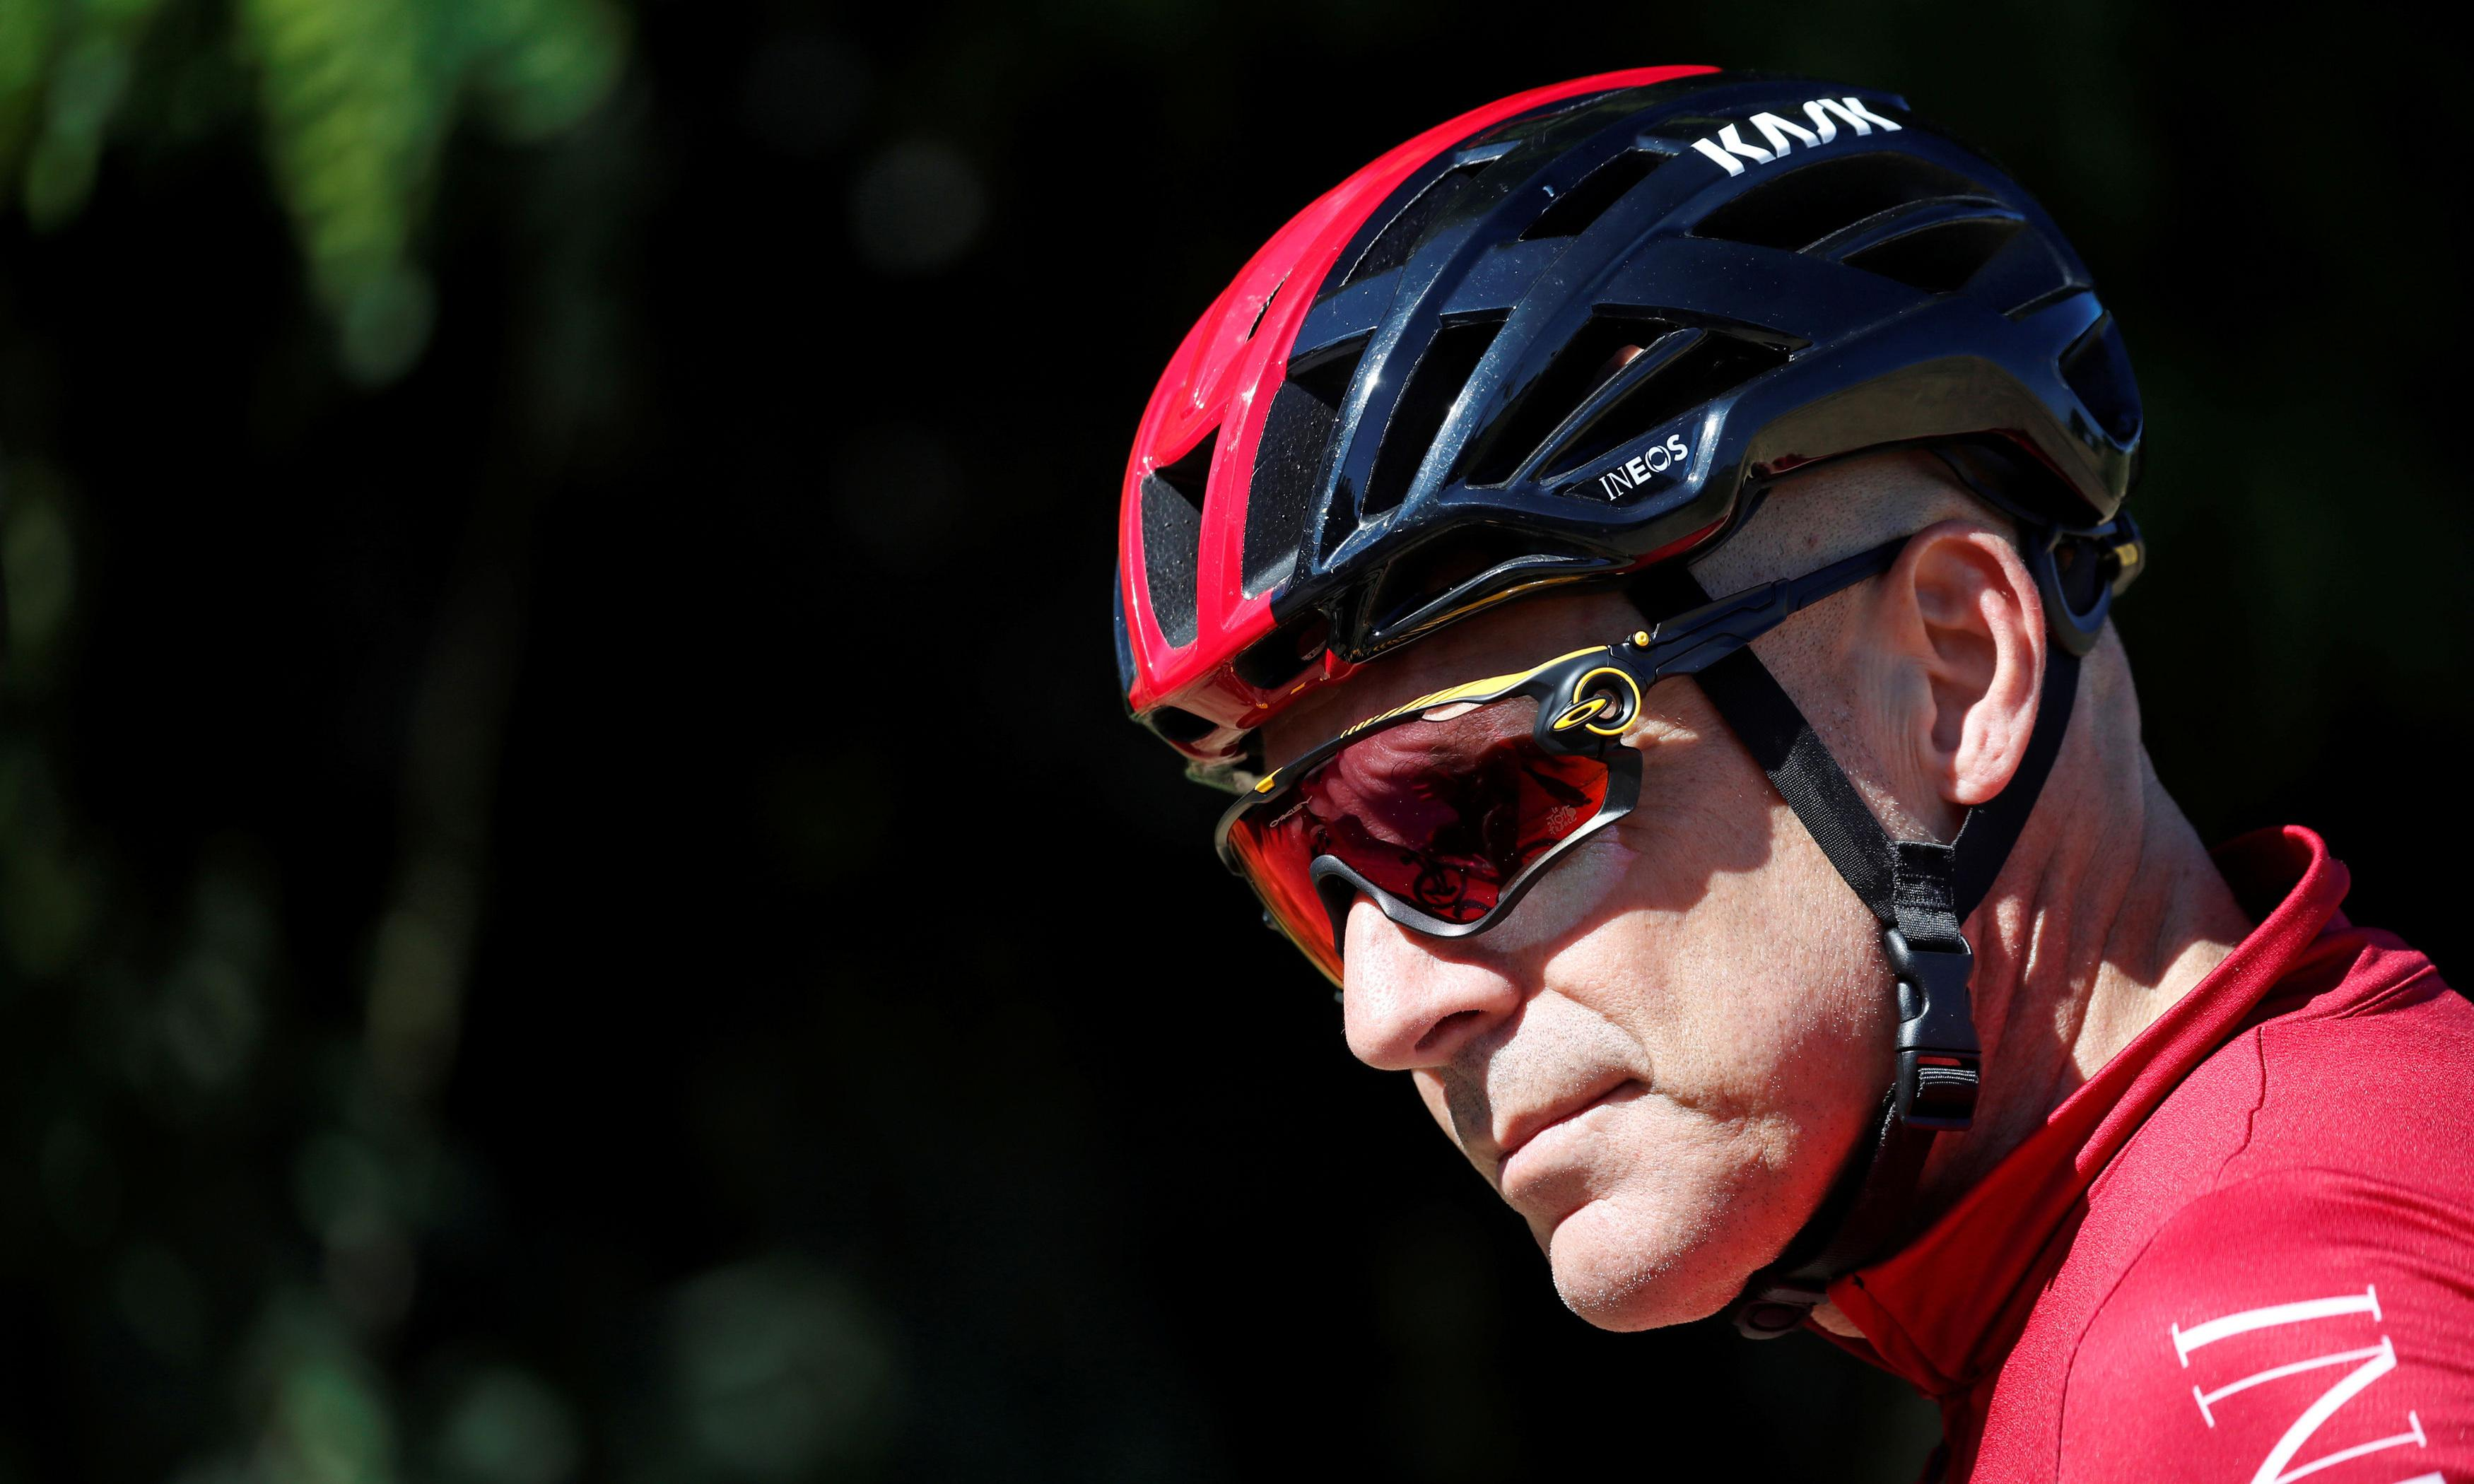 Dave Brailsford buries hatchet with UCI chief Lappartient after Froome rift